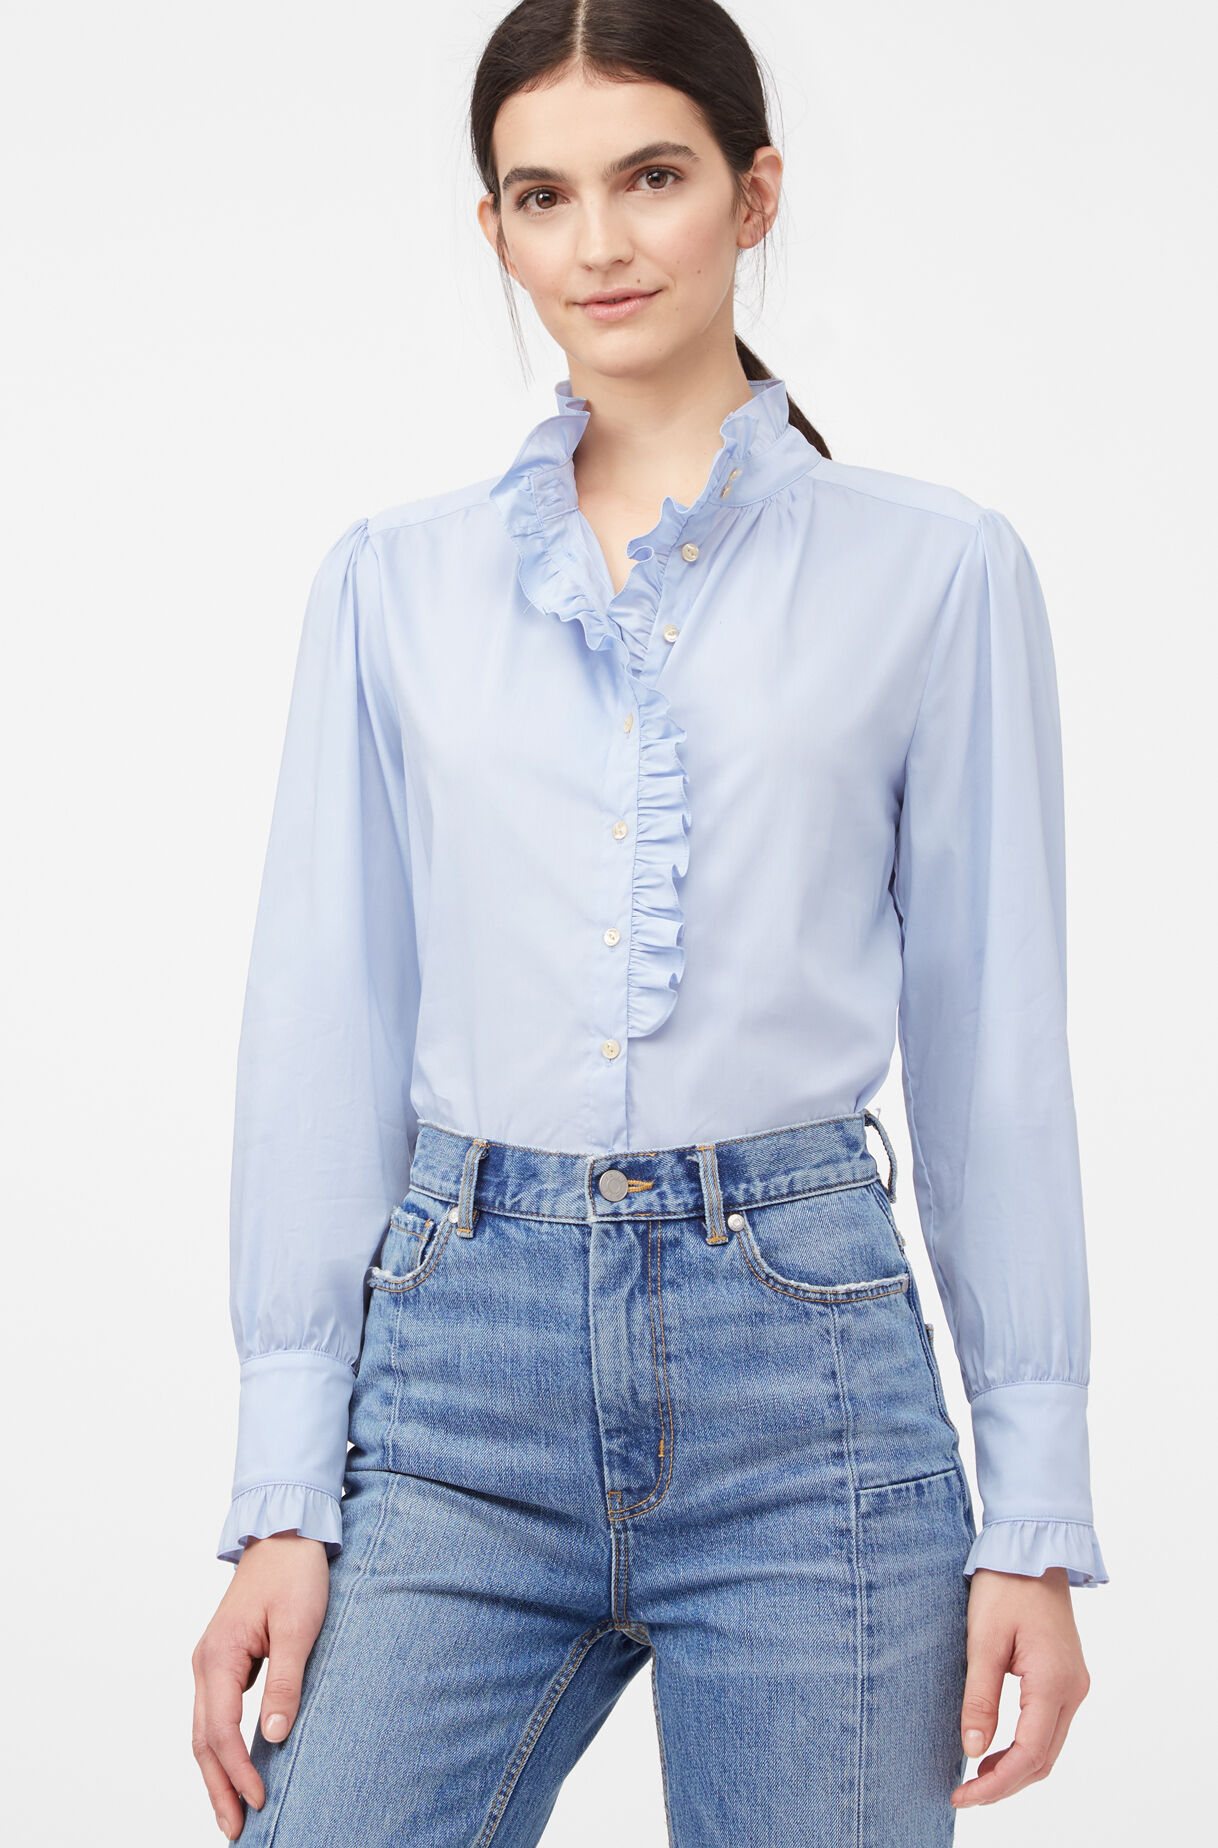 La Chemise Poplin Ruffle Top, Oxford Blue, large